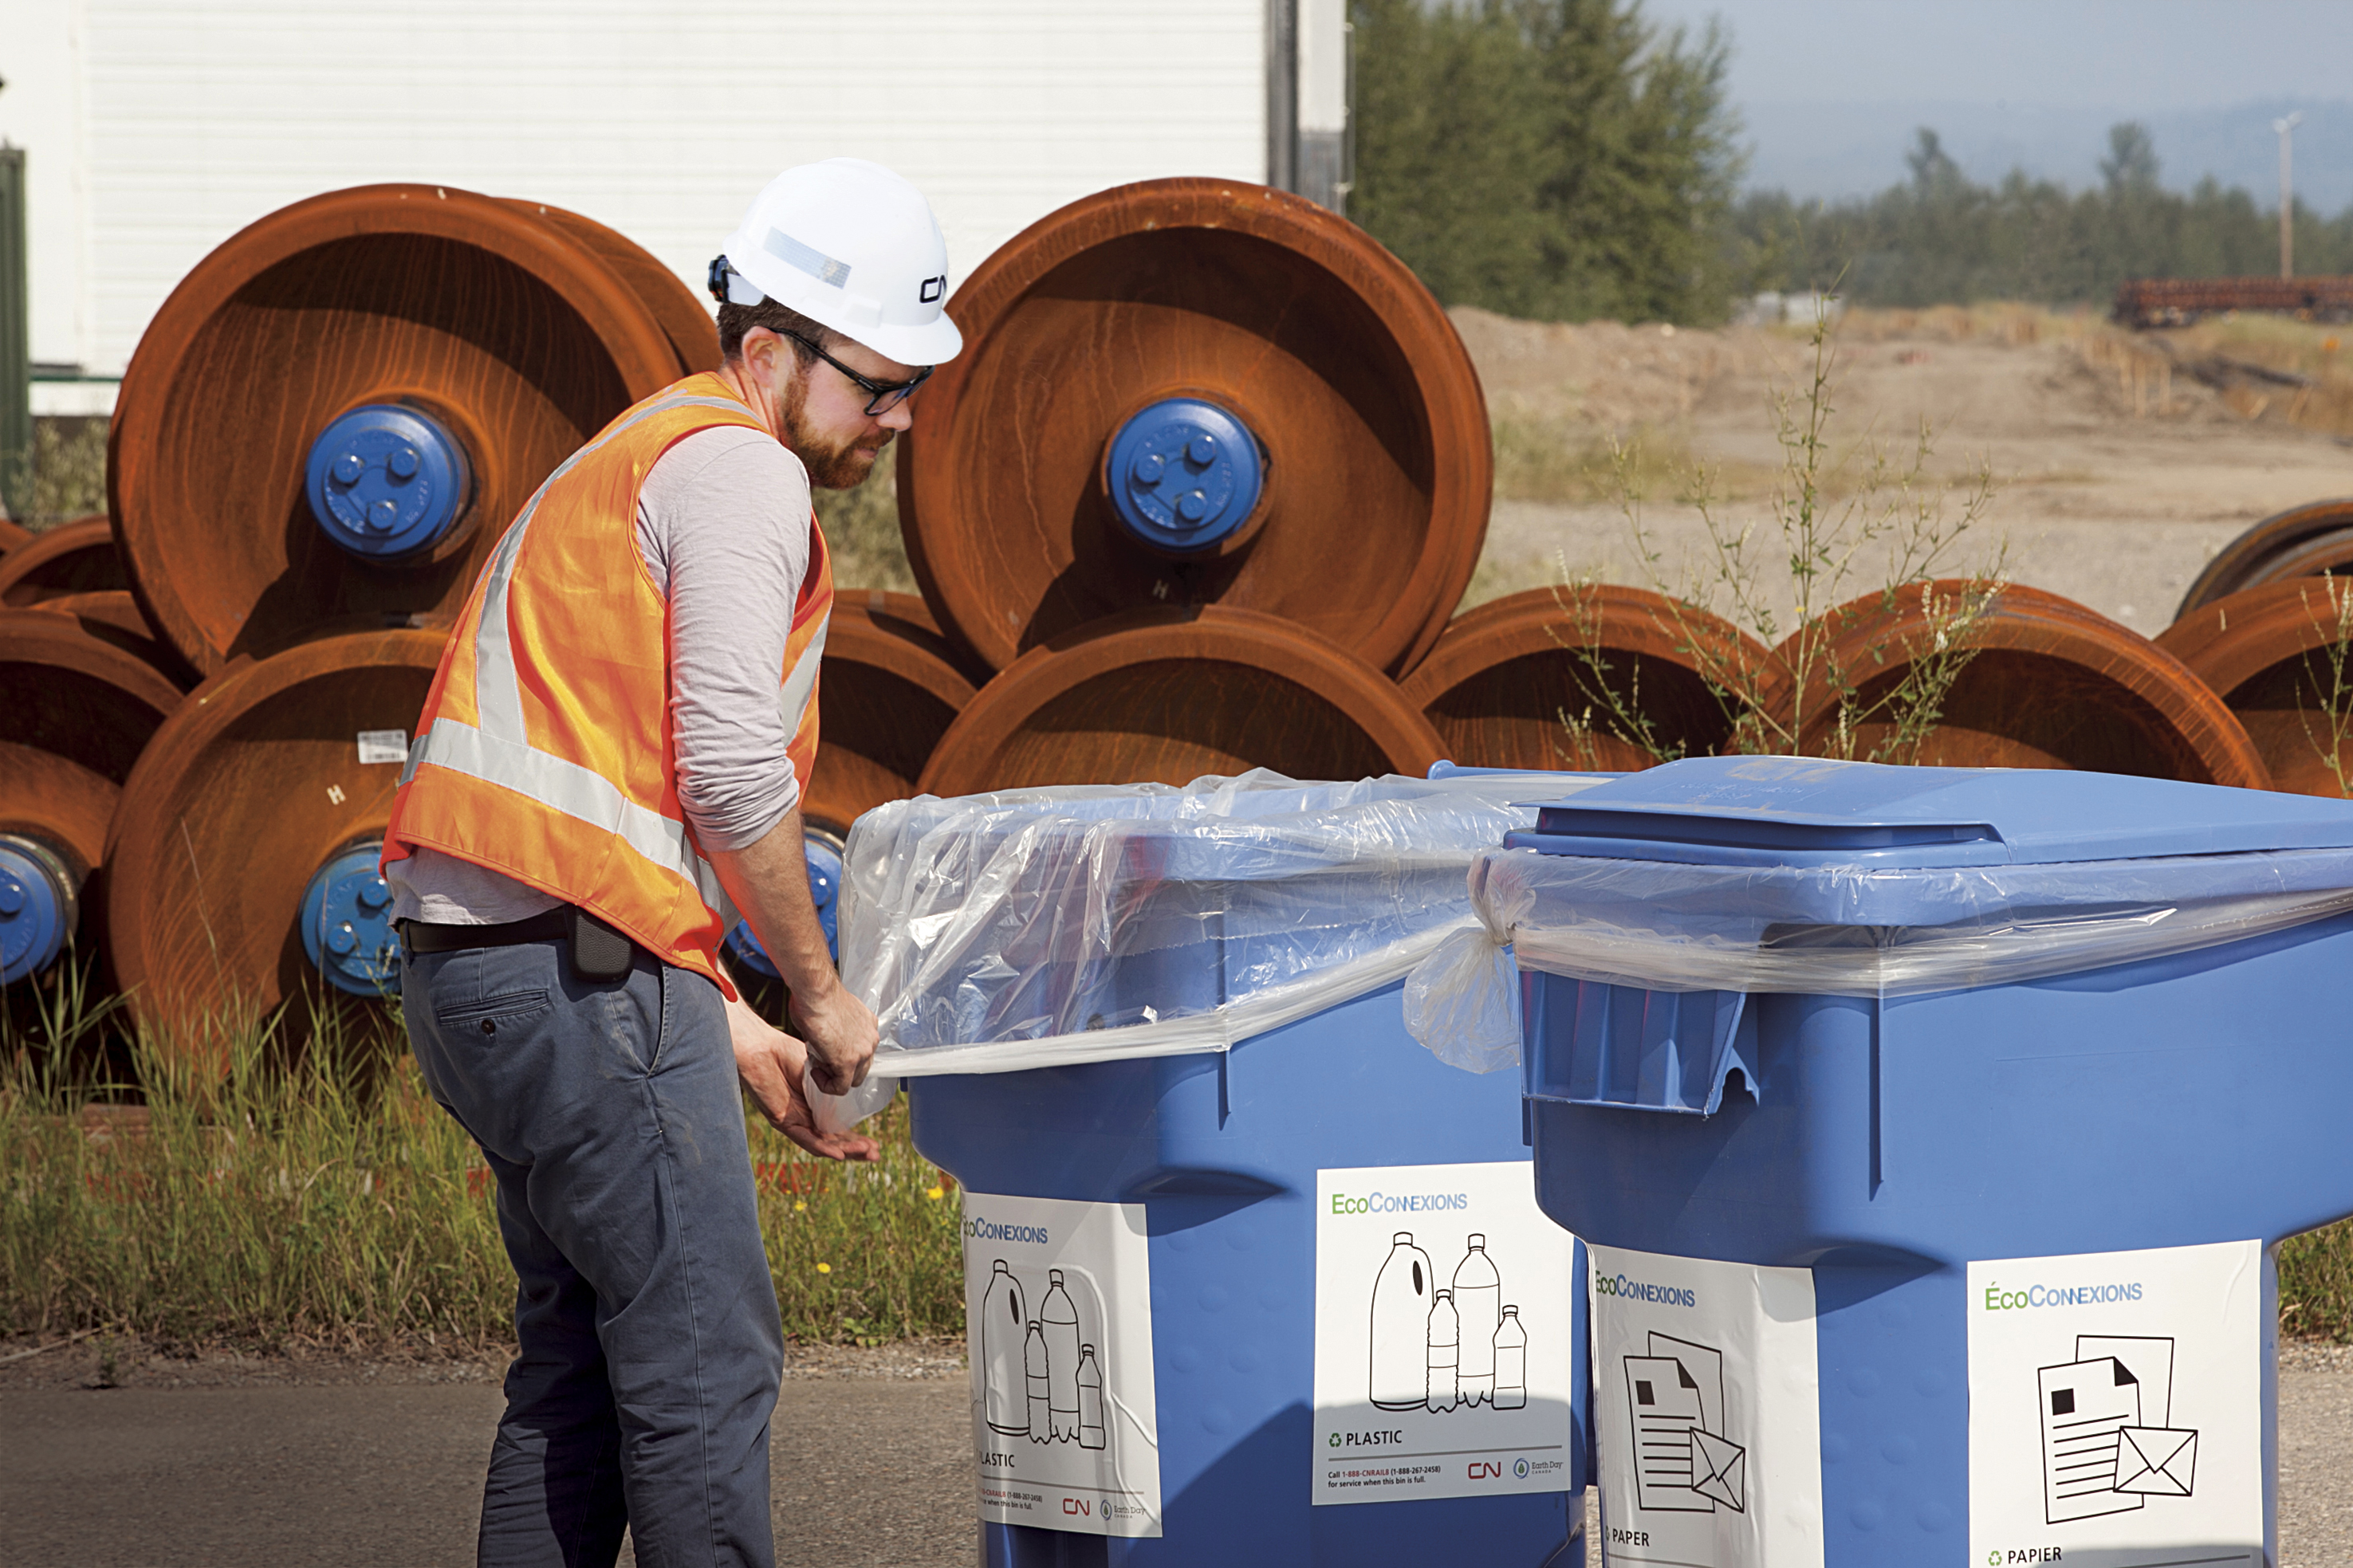 Manager, Waste and Resource Conservation, Reid Bodley oversees the installation of new waste and recycling bins at our yards, and provides training on waste conservation practices.